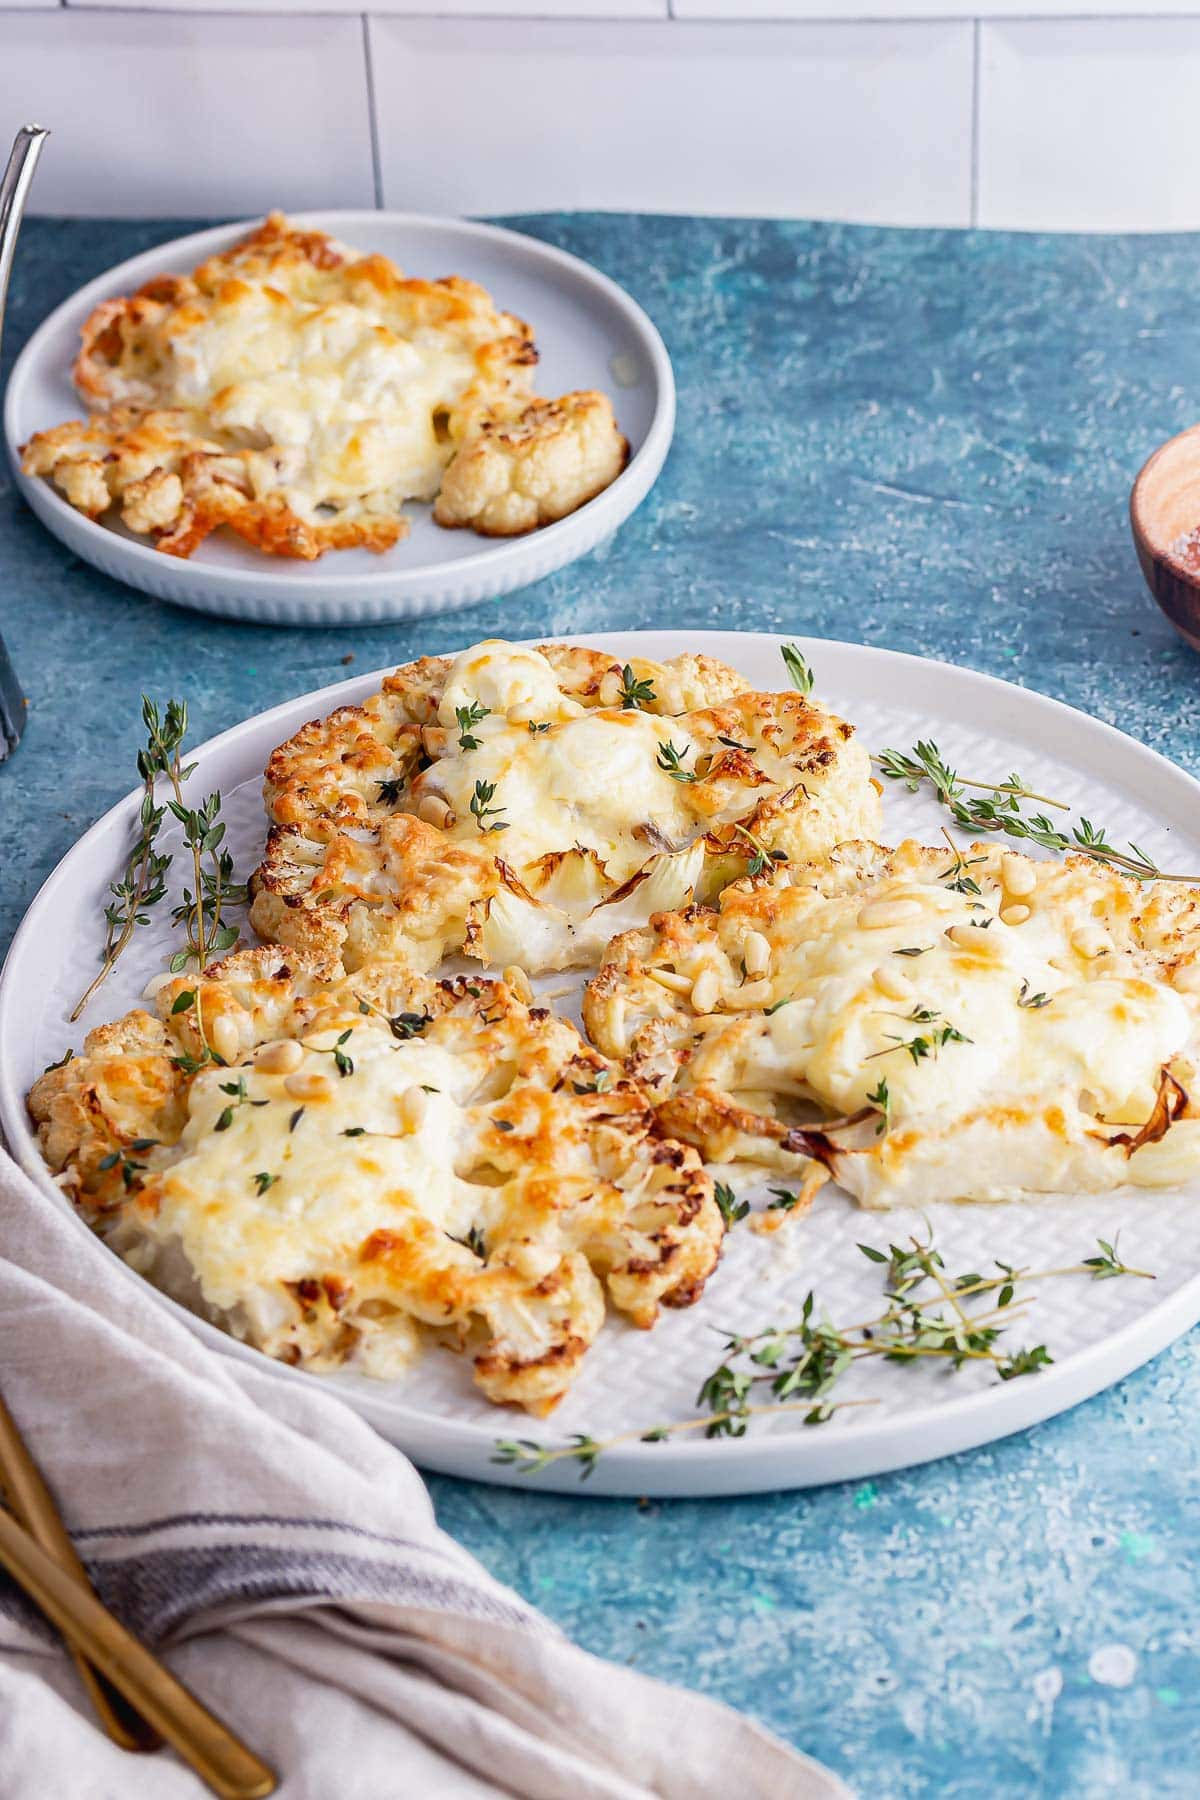 Plate of cauliflower steaks with cheese on a blue background